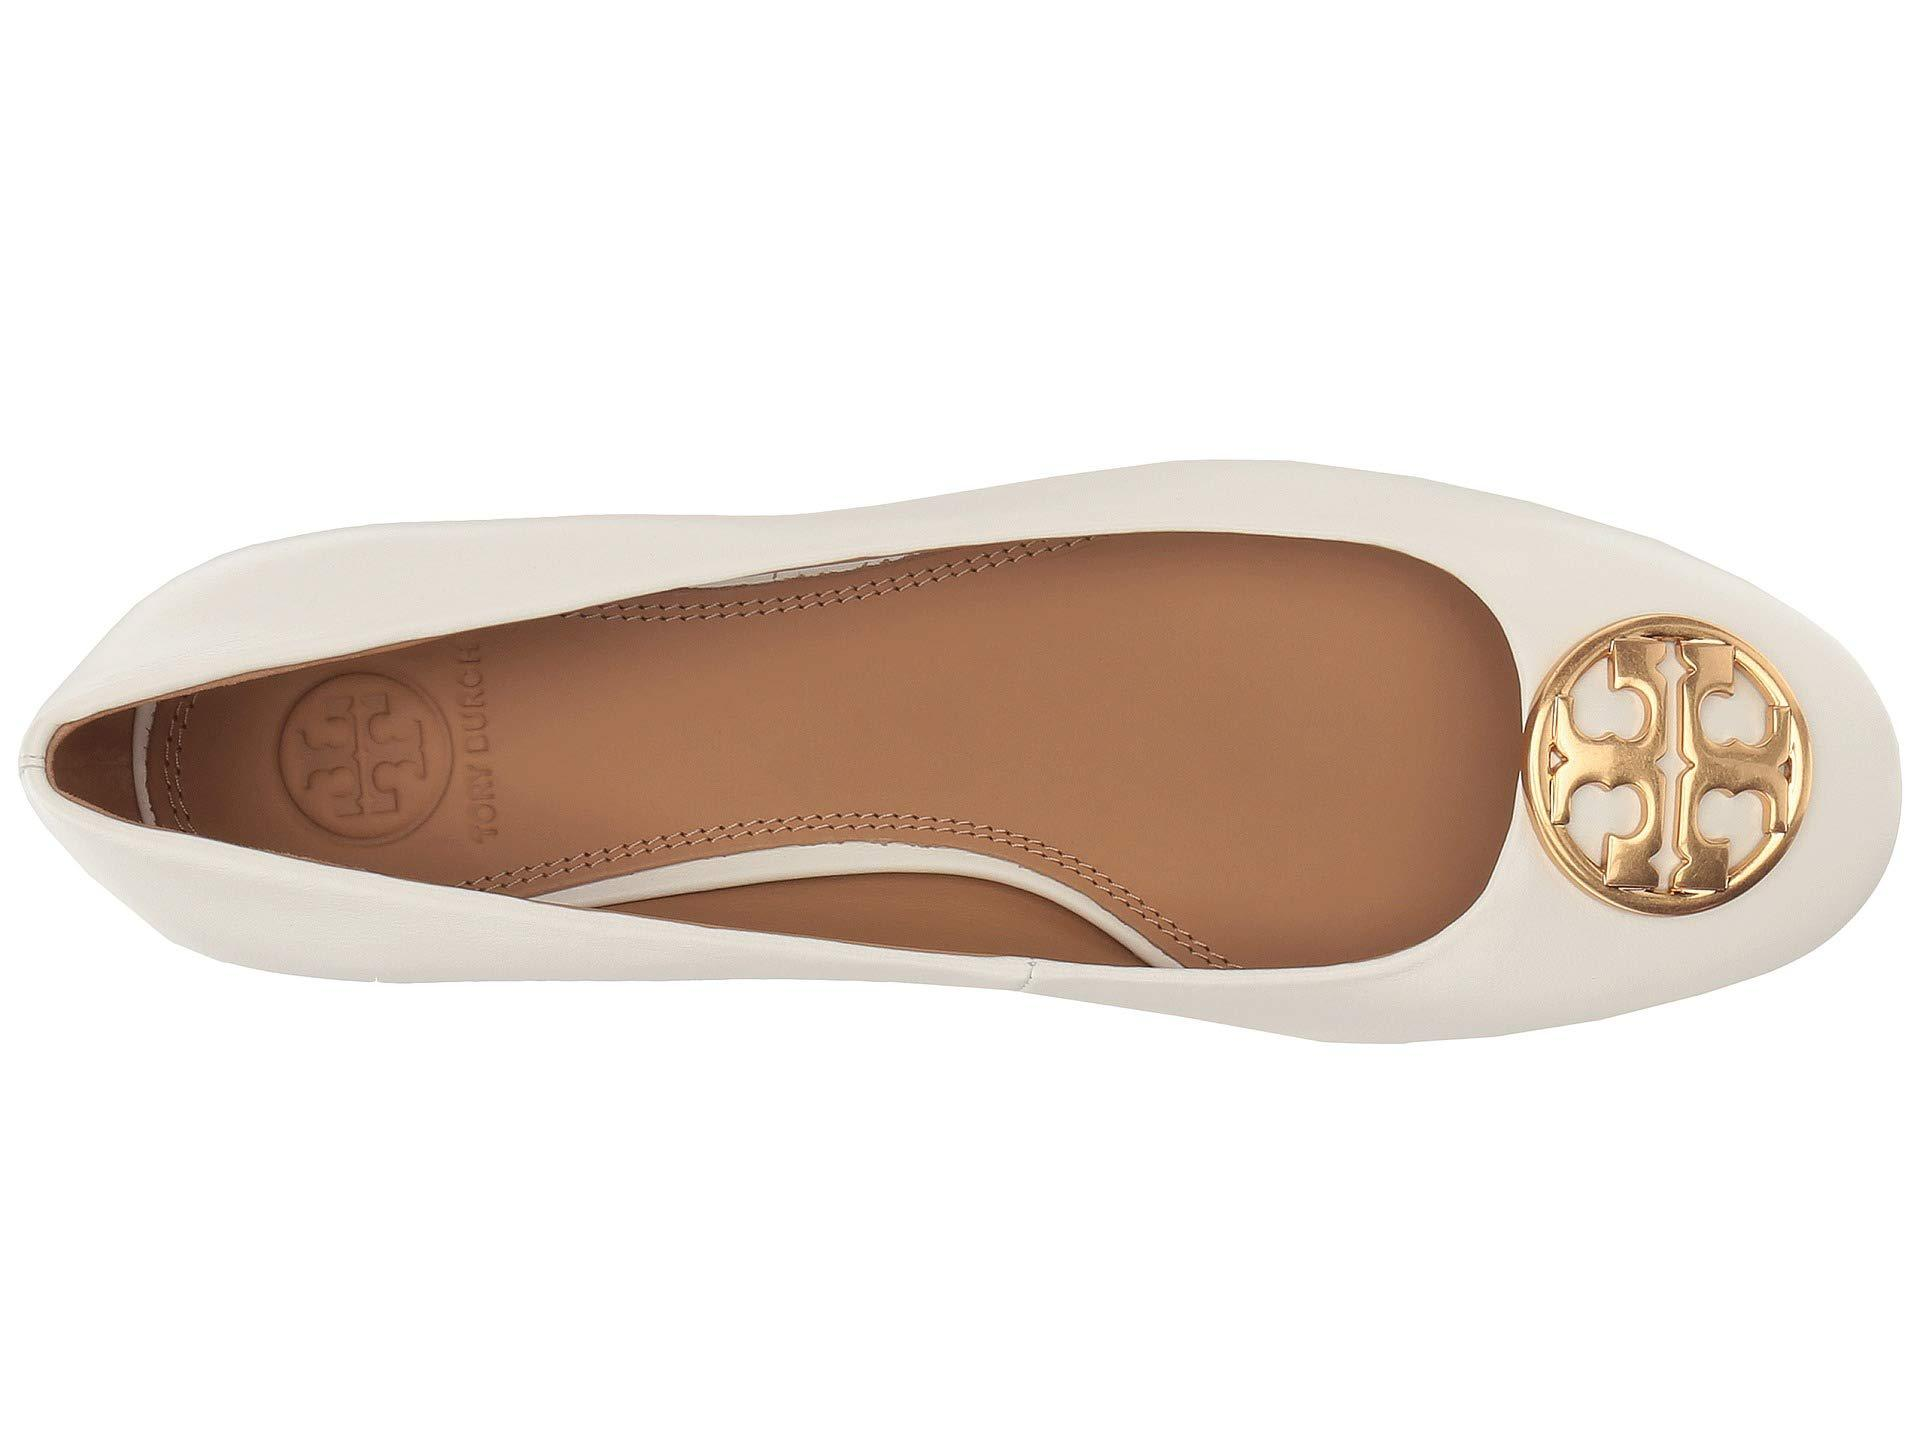 749936e2cf4 Tory Burch - Multicolor Chelsea 25mm Ballet Flat - Lyst. View fullscreen